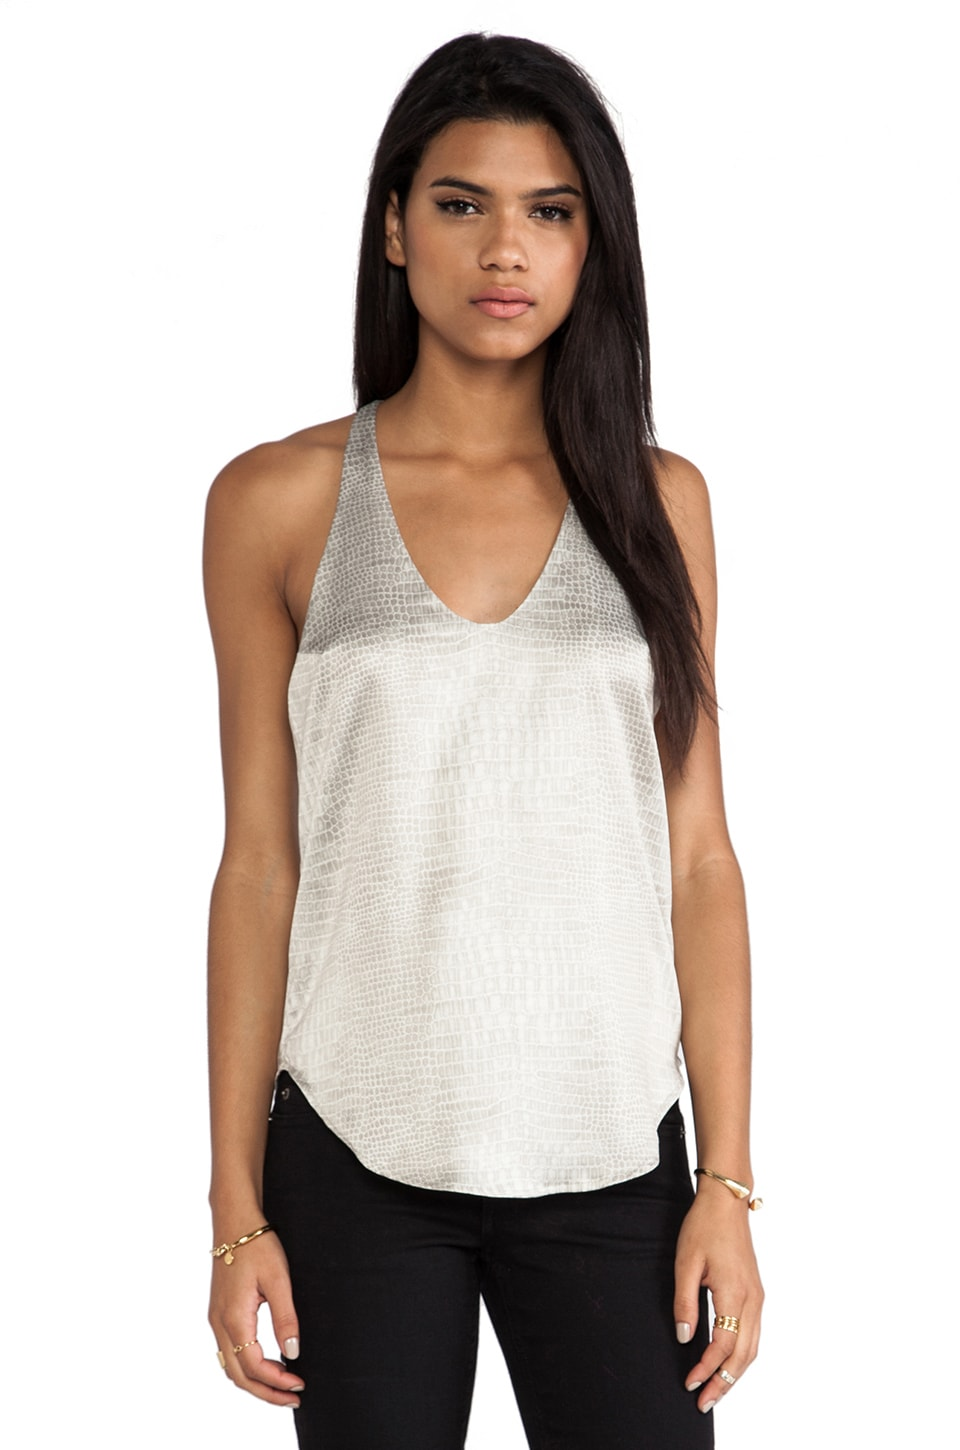 Capulet Camisole Tank in Light Croc Print